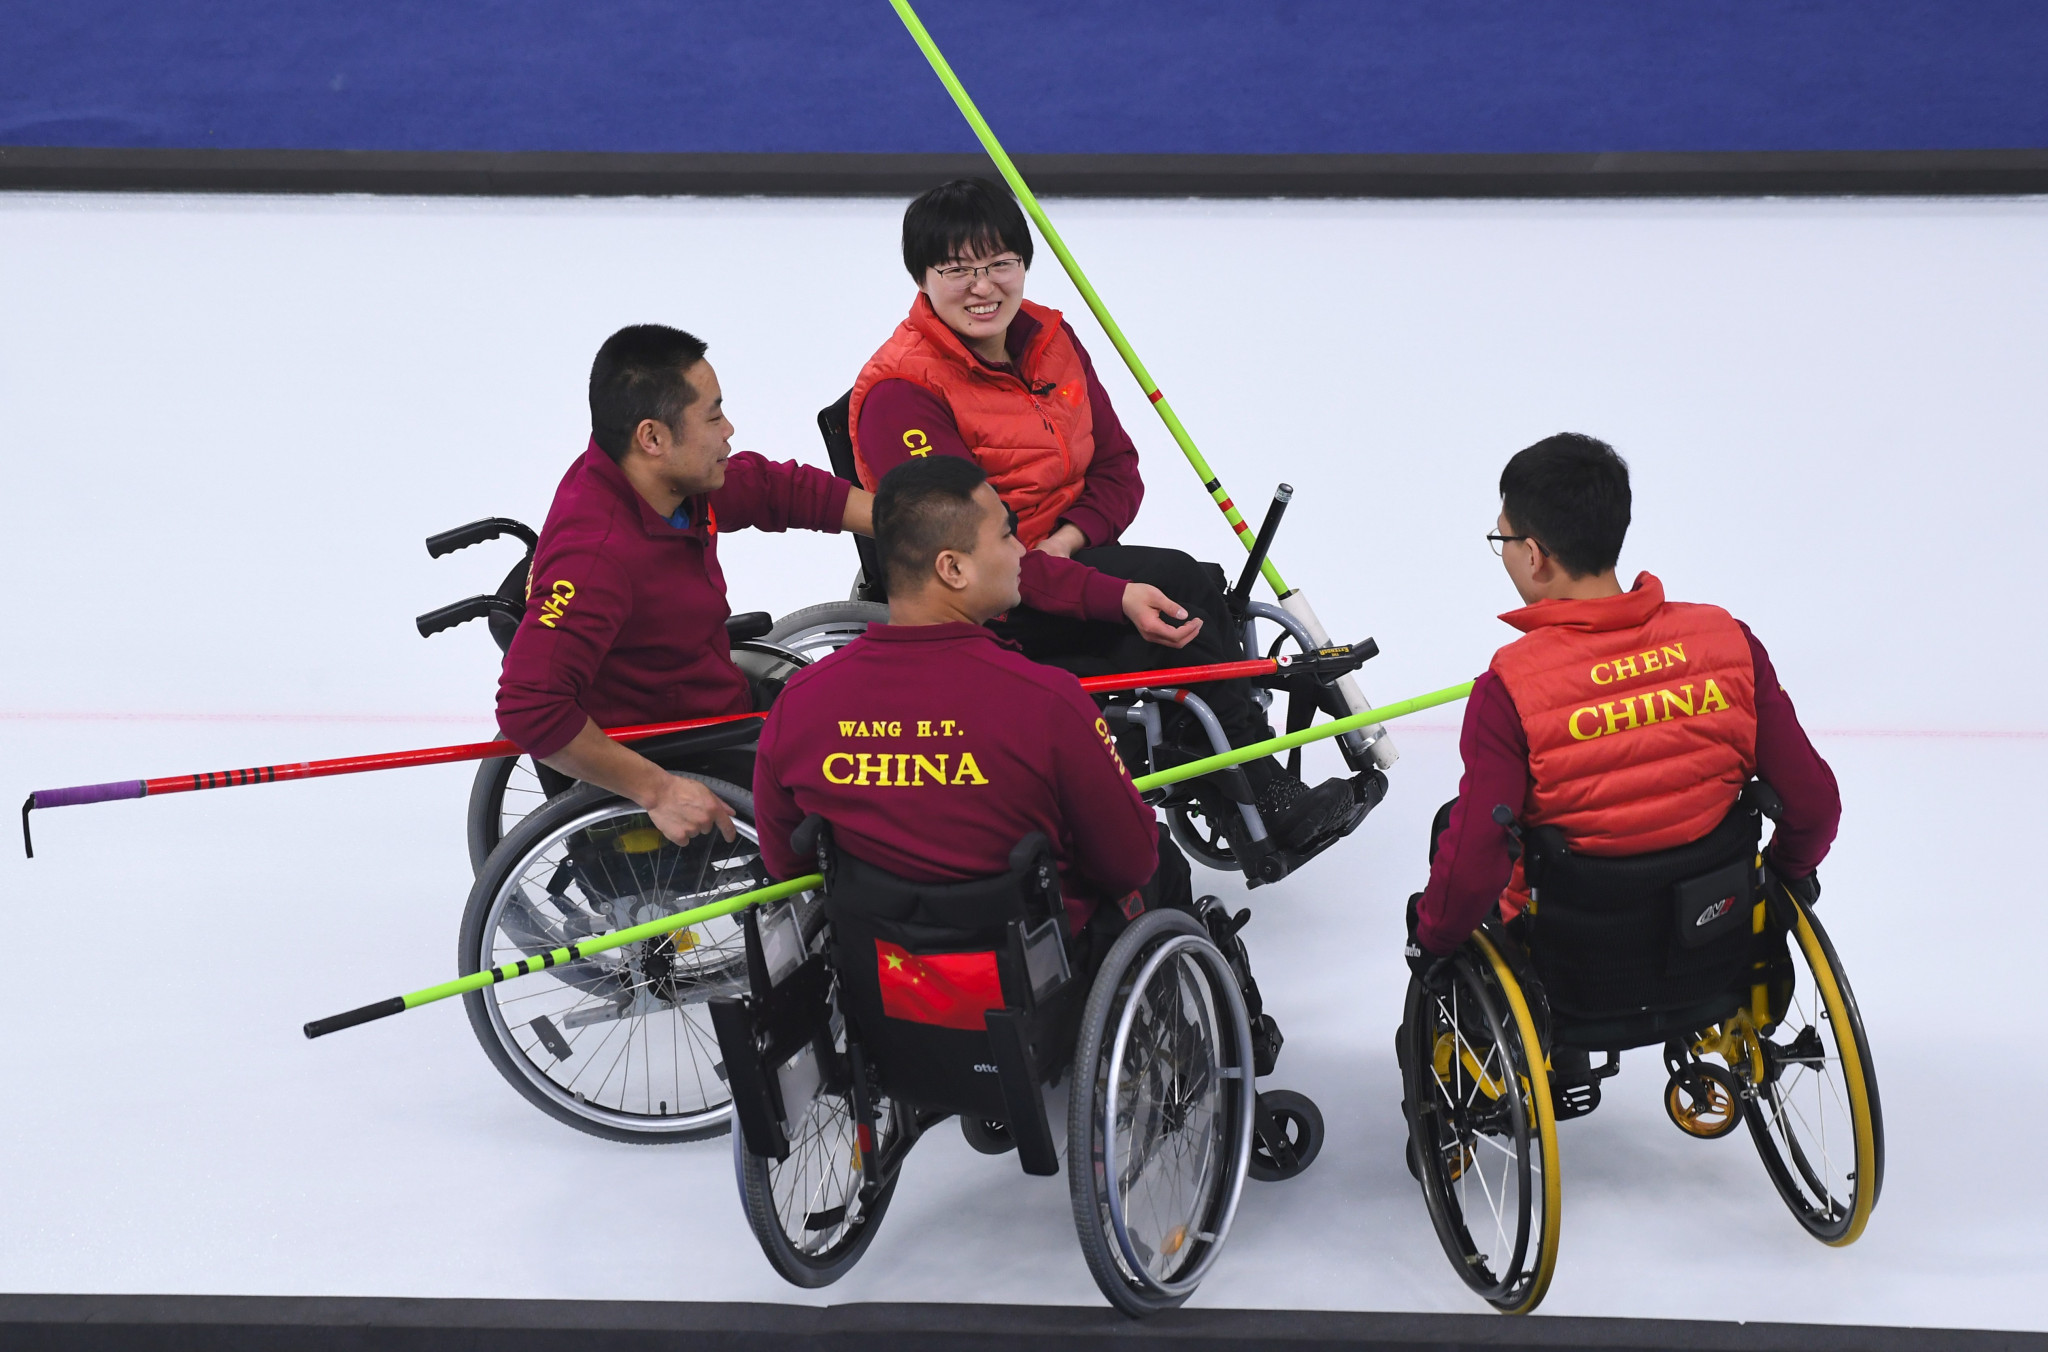 China to defend World Wheelchair Curling Championship title in Wetzikon